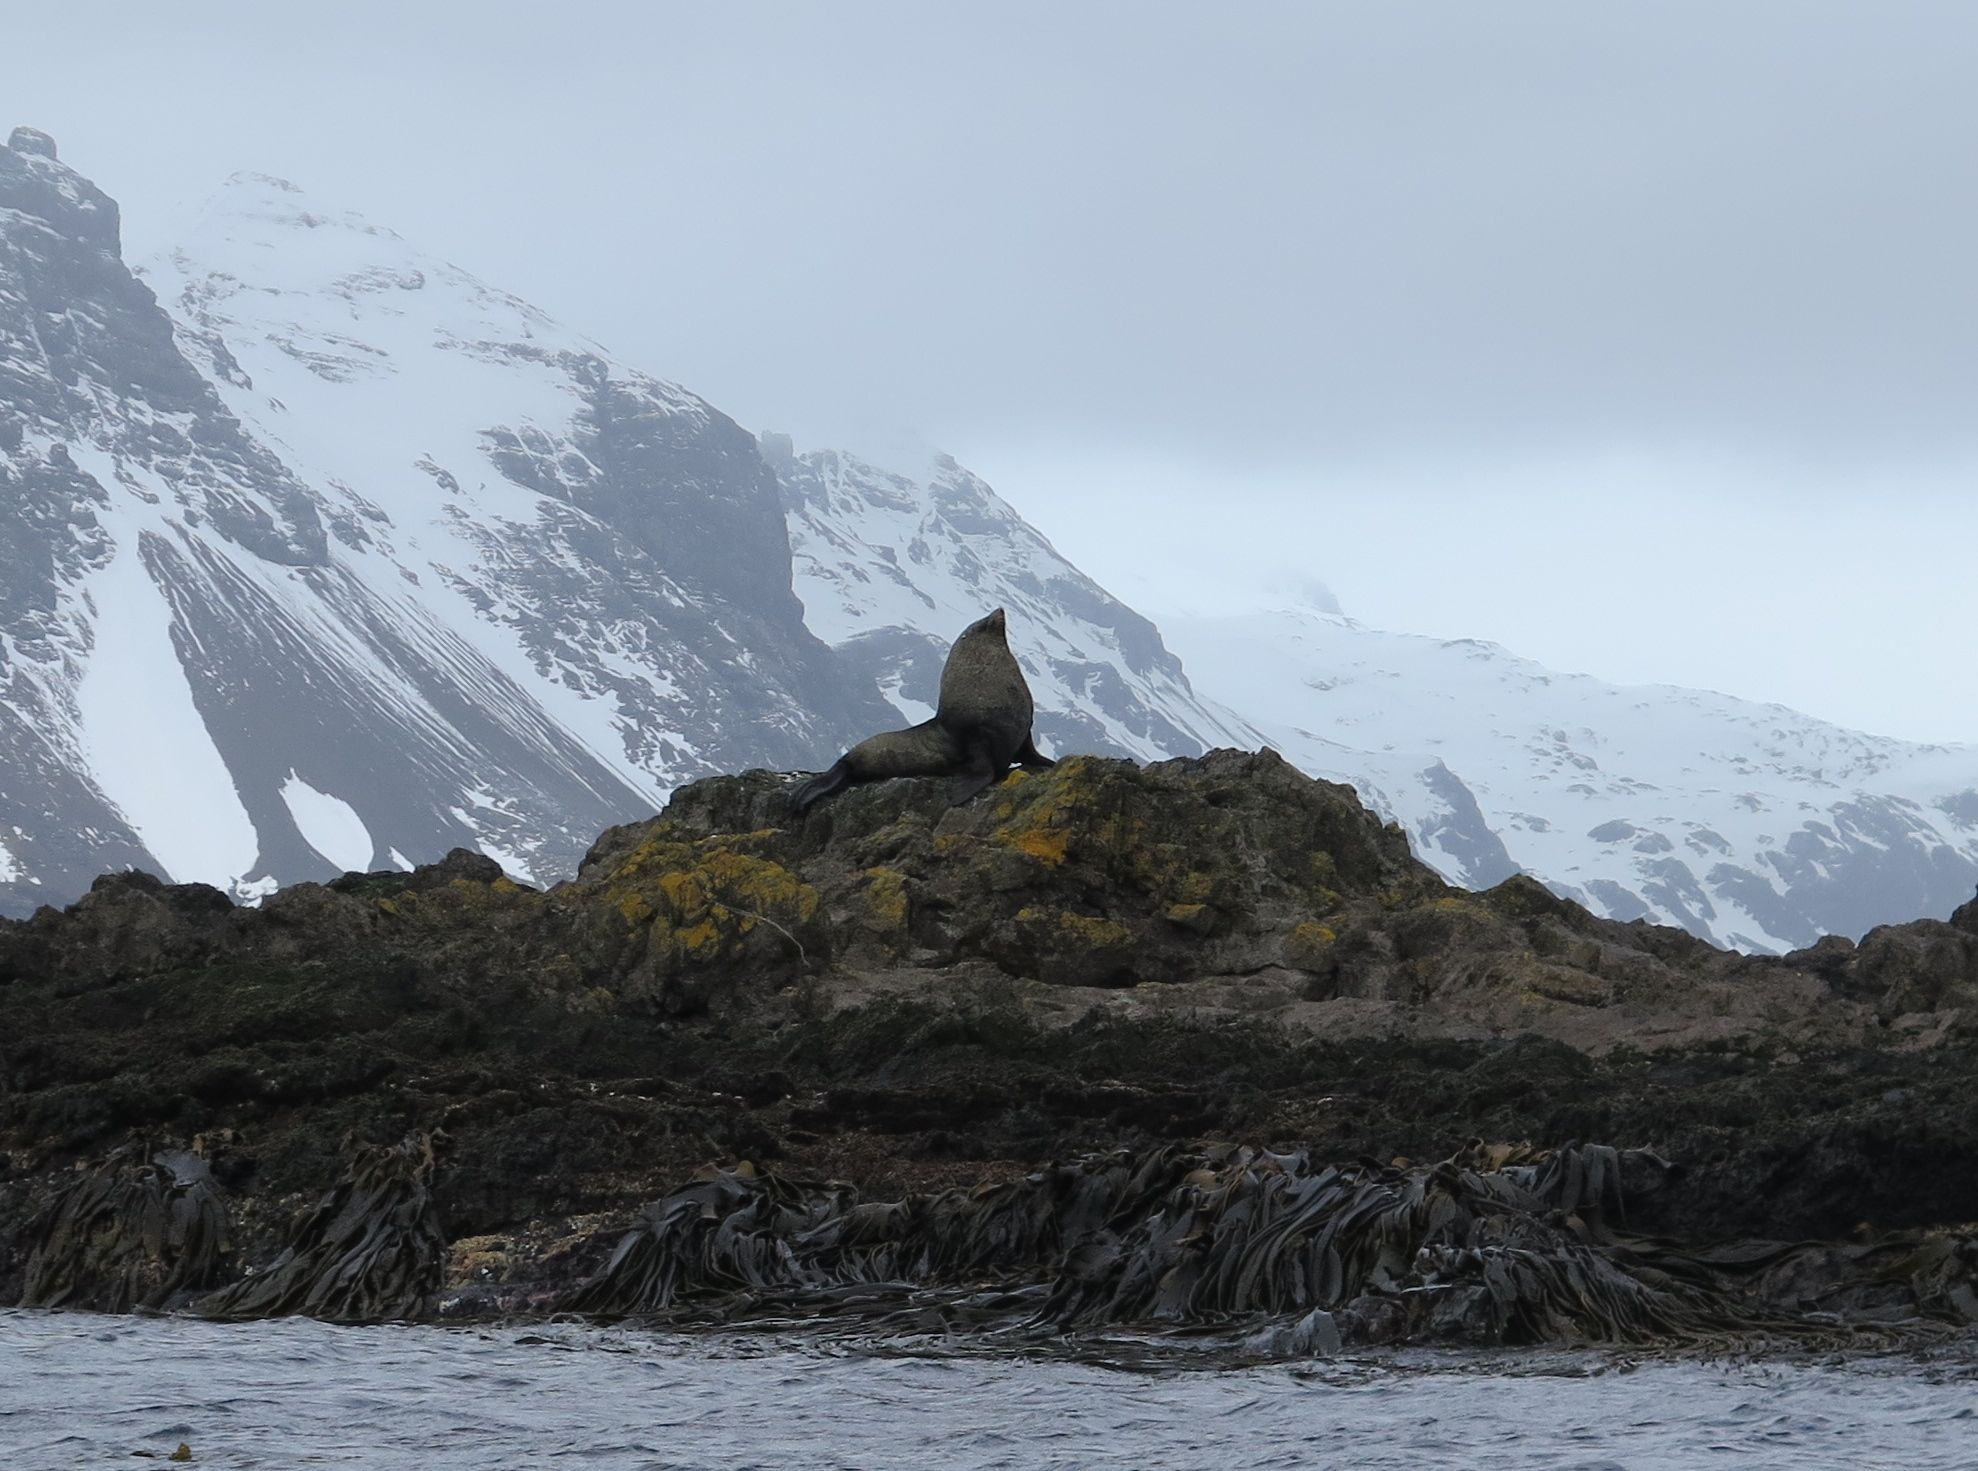 A male Southern elephant seal stood sentry along the narrowing channel we had to negotiate to reach Prion Island.